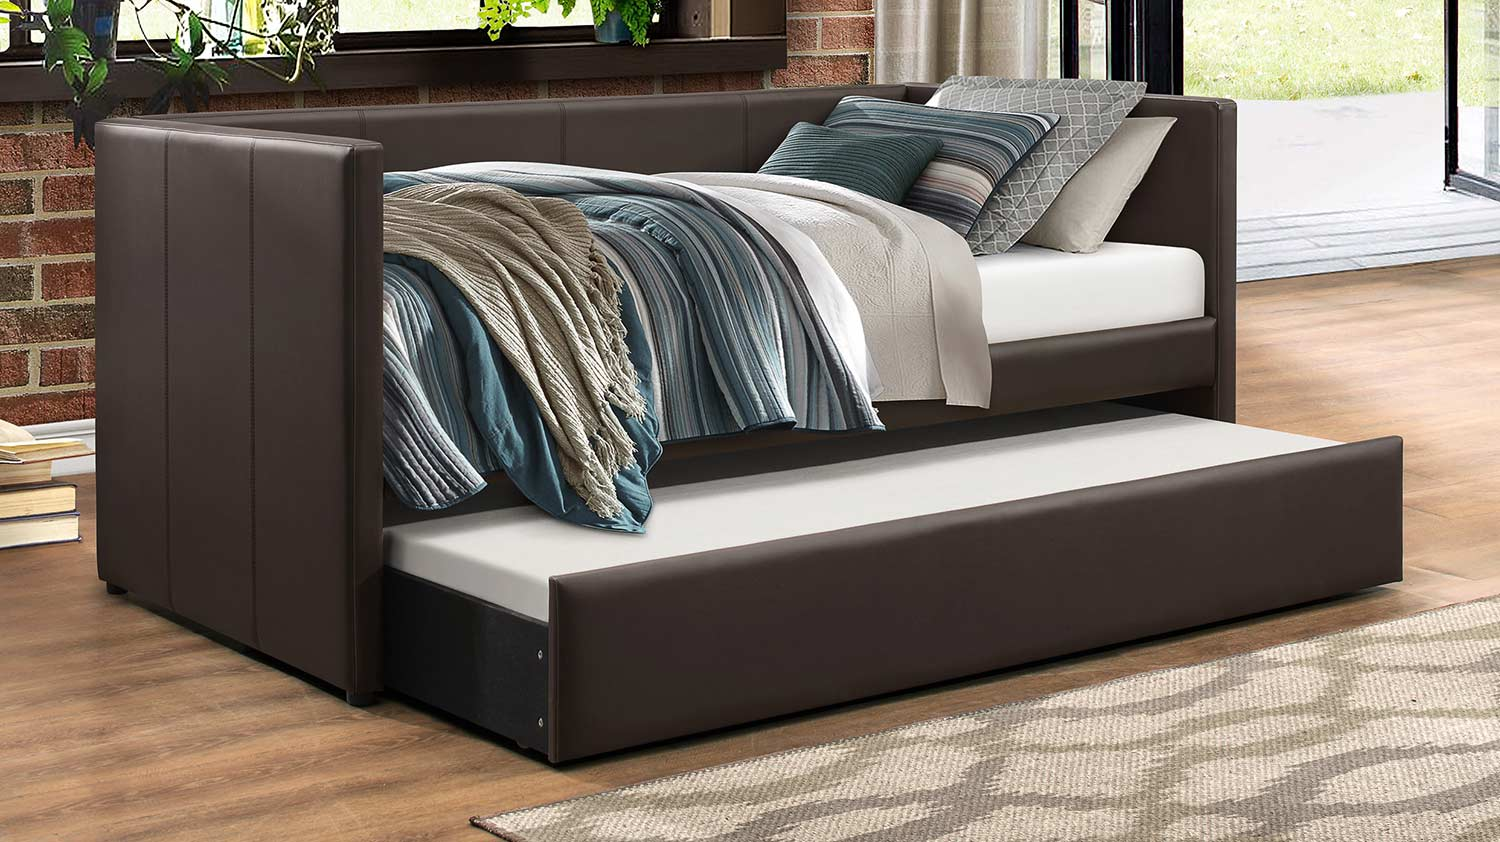 Homelegance Adra Daybed with Trundle - Dark Brown